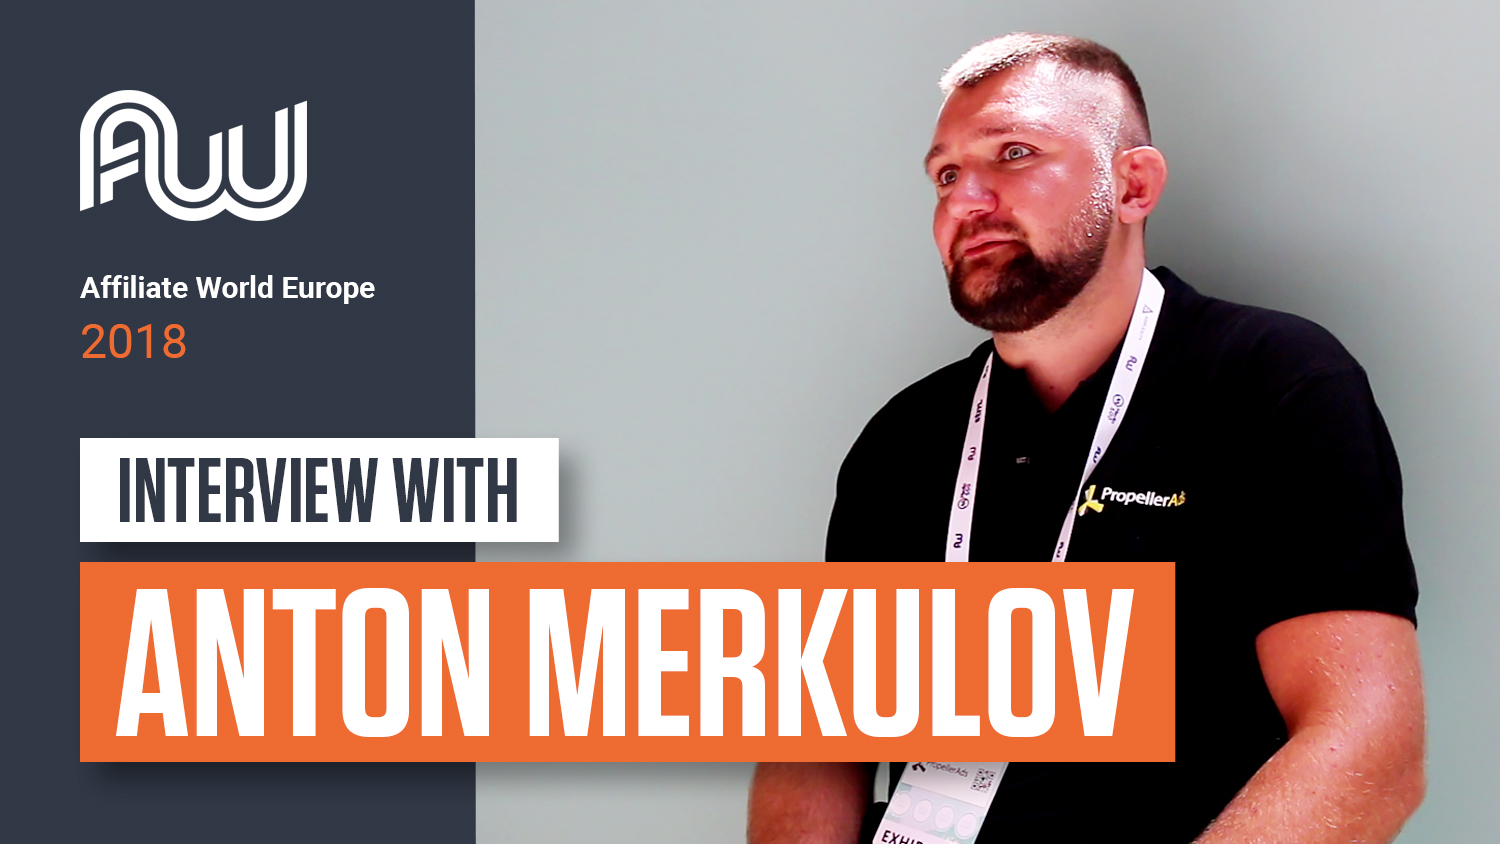 Anton Merkulov Interview Affiliate World Europe 2018